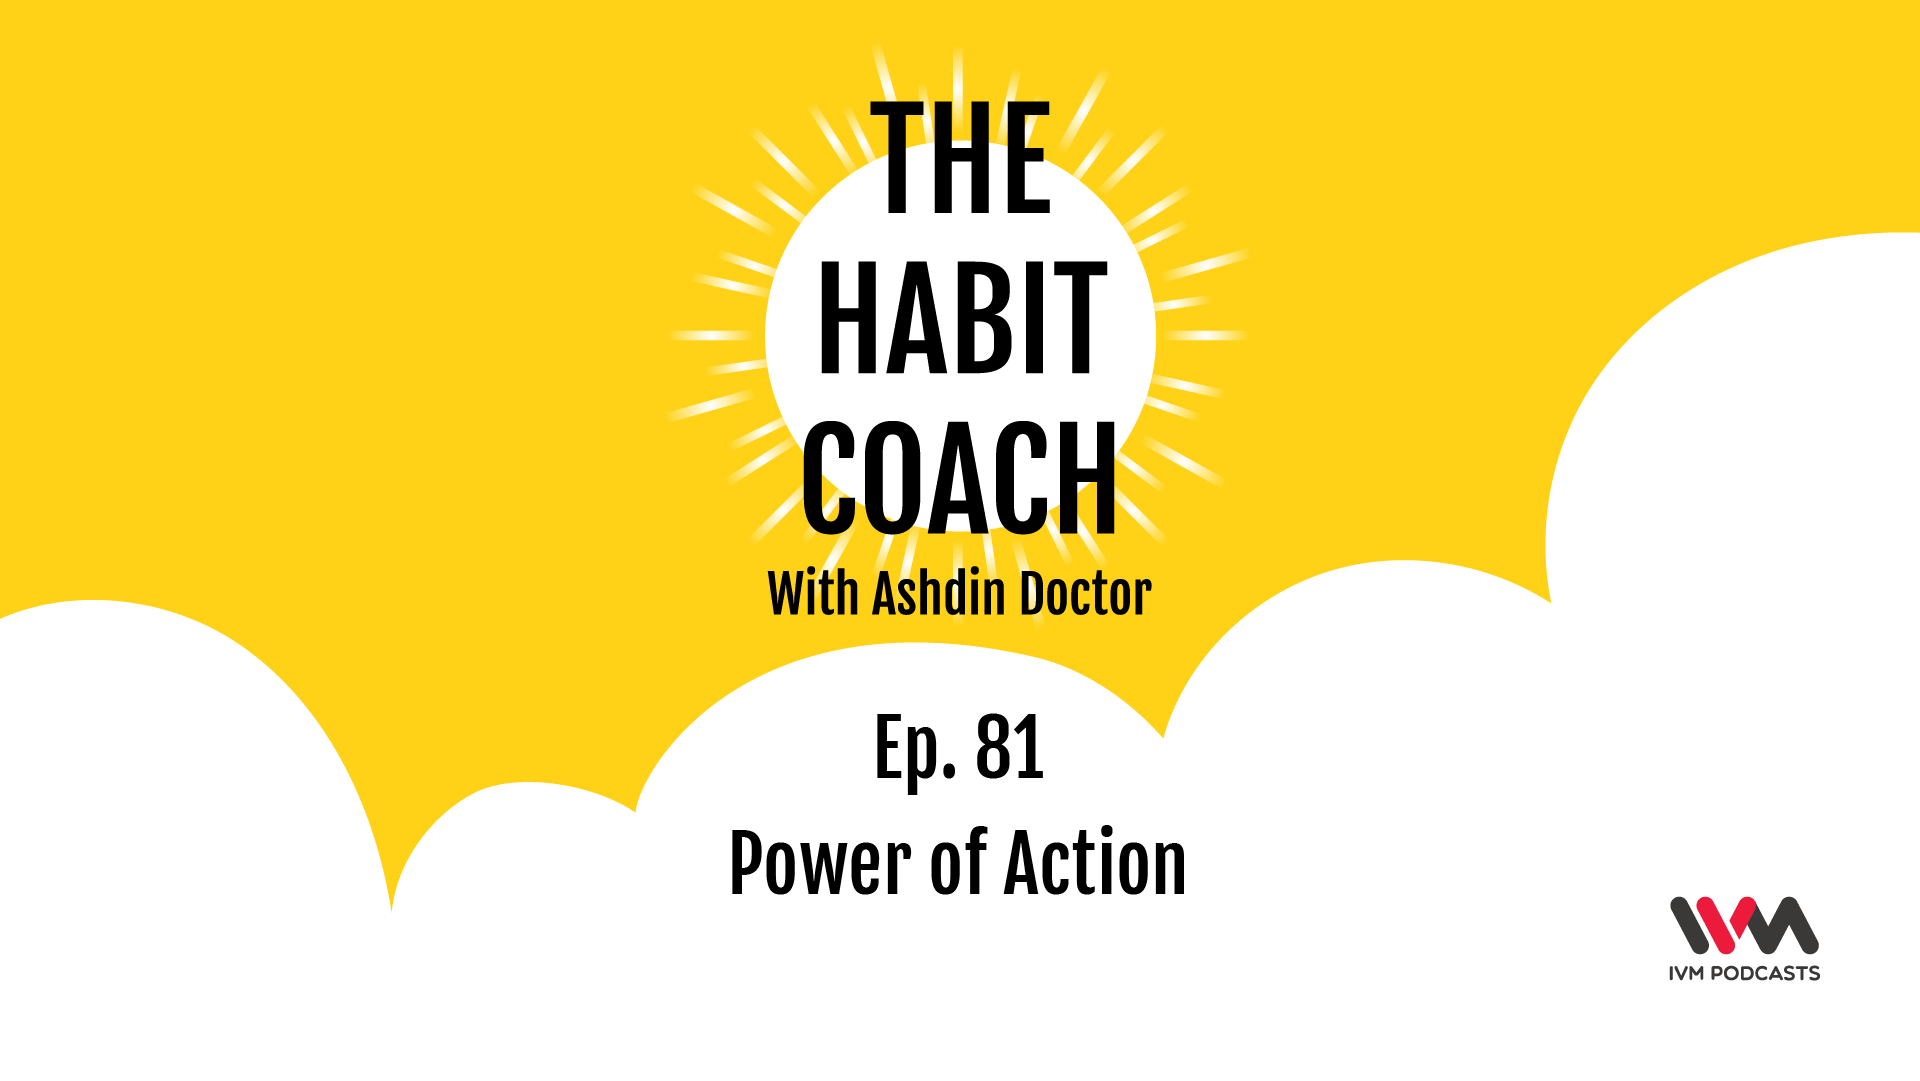 TheHabitCoachEpisode81.png